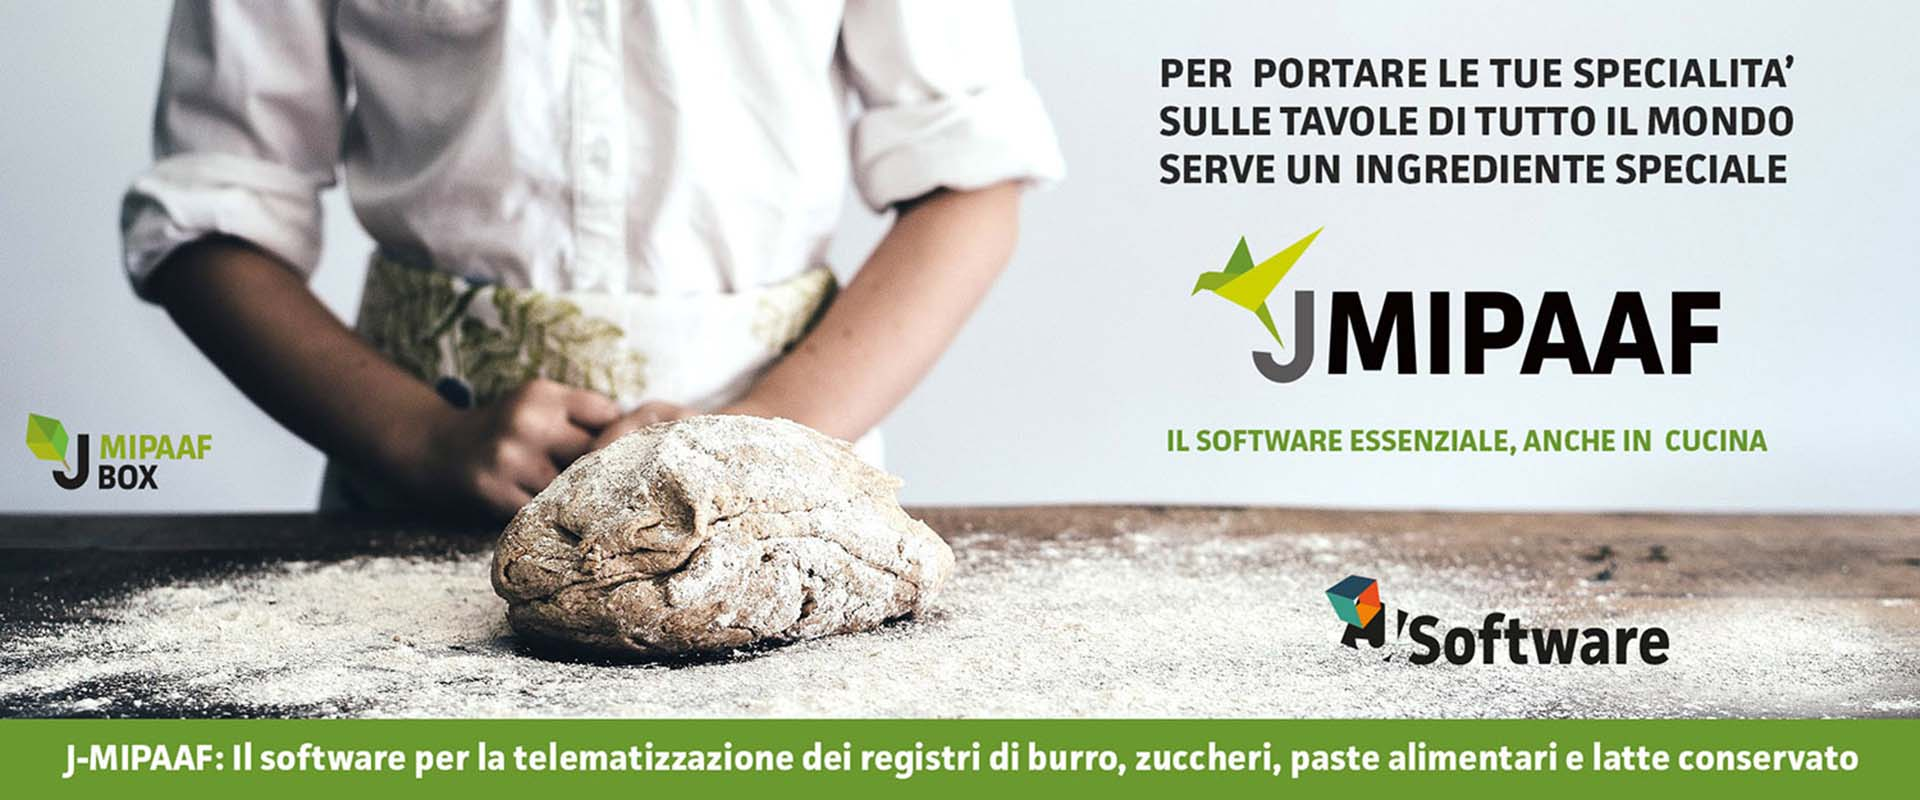 gestionale telematico Mipaaf J-Software